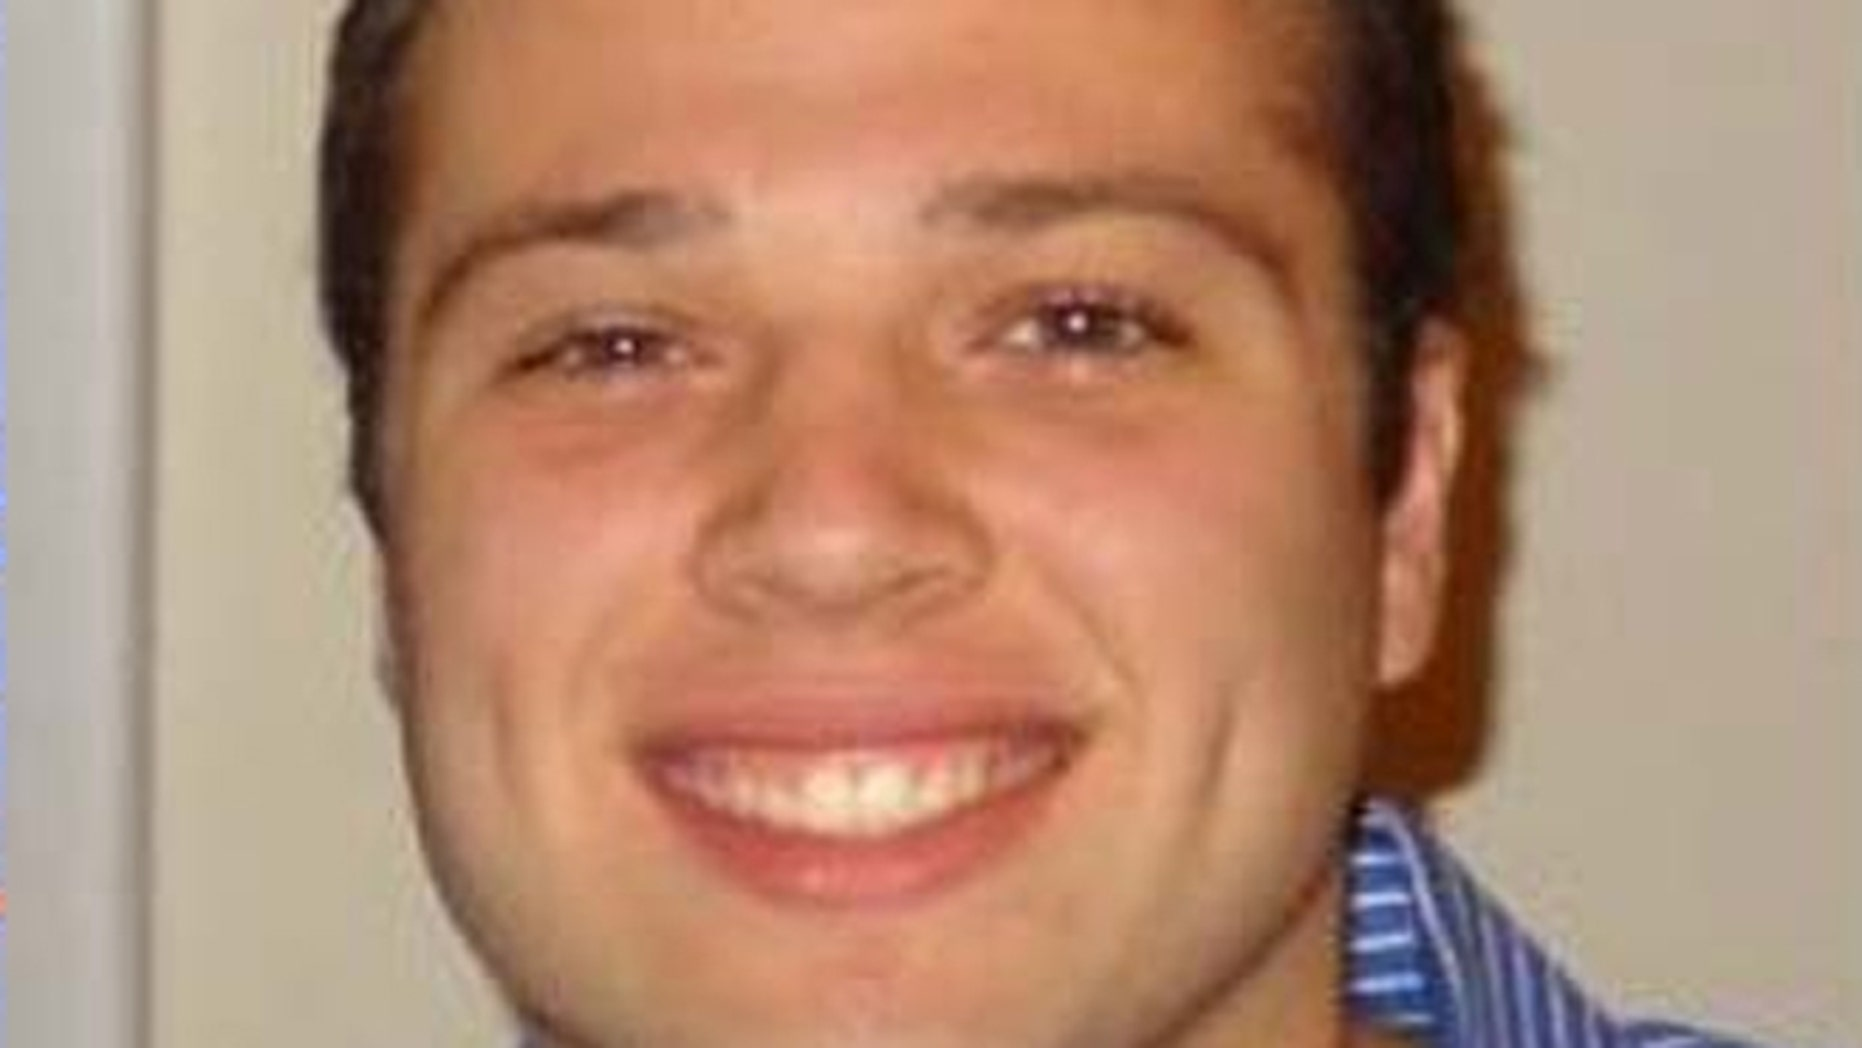 Stephen Ziska was last seen by his roommates at around 11:30 a.m. on Monday. He did not show up for an exam that was at noon.